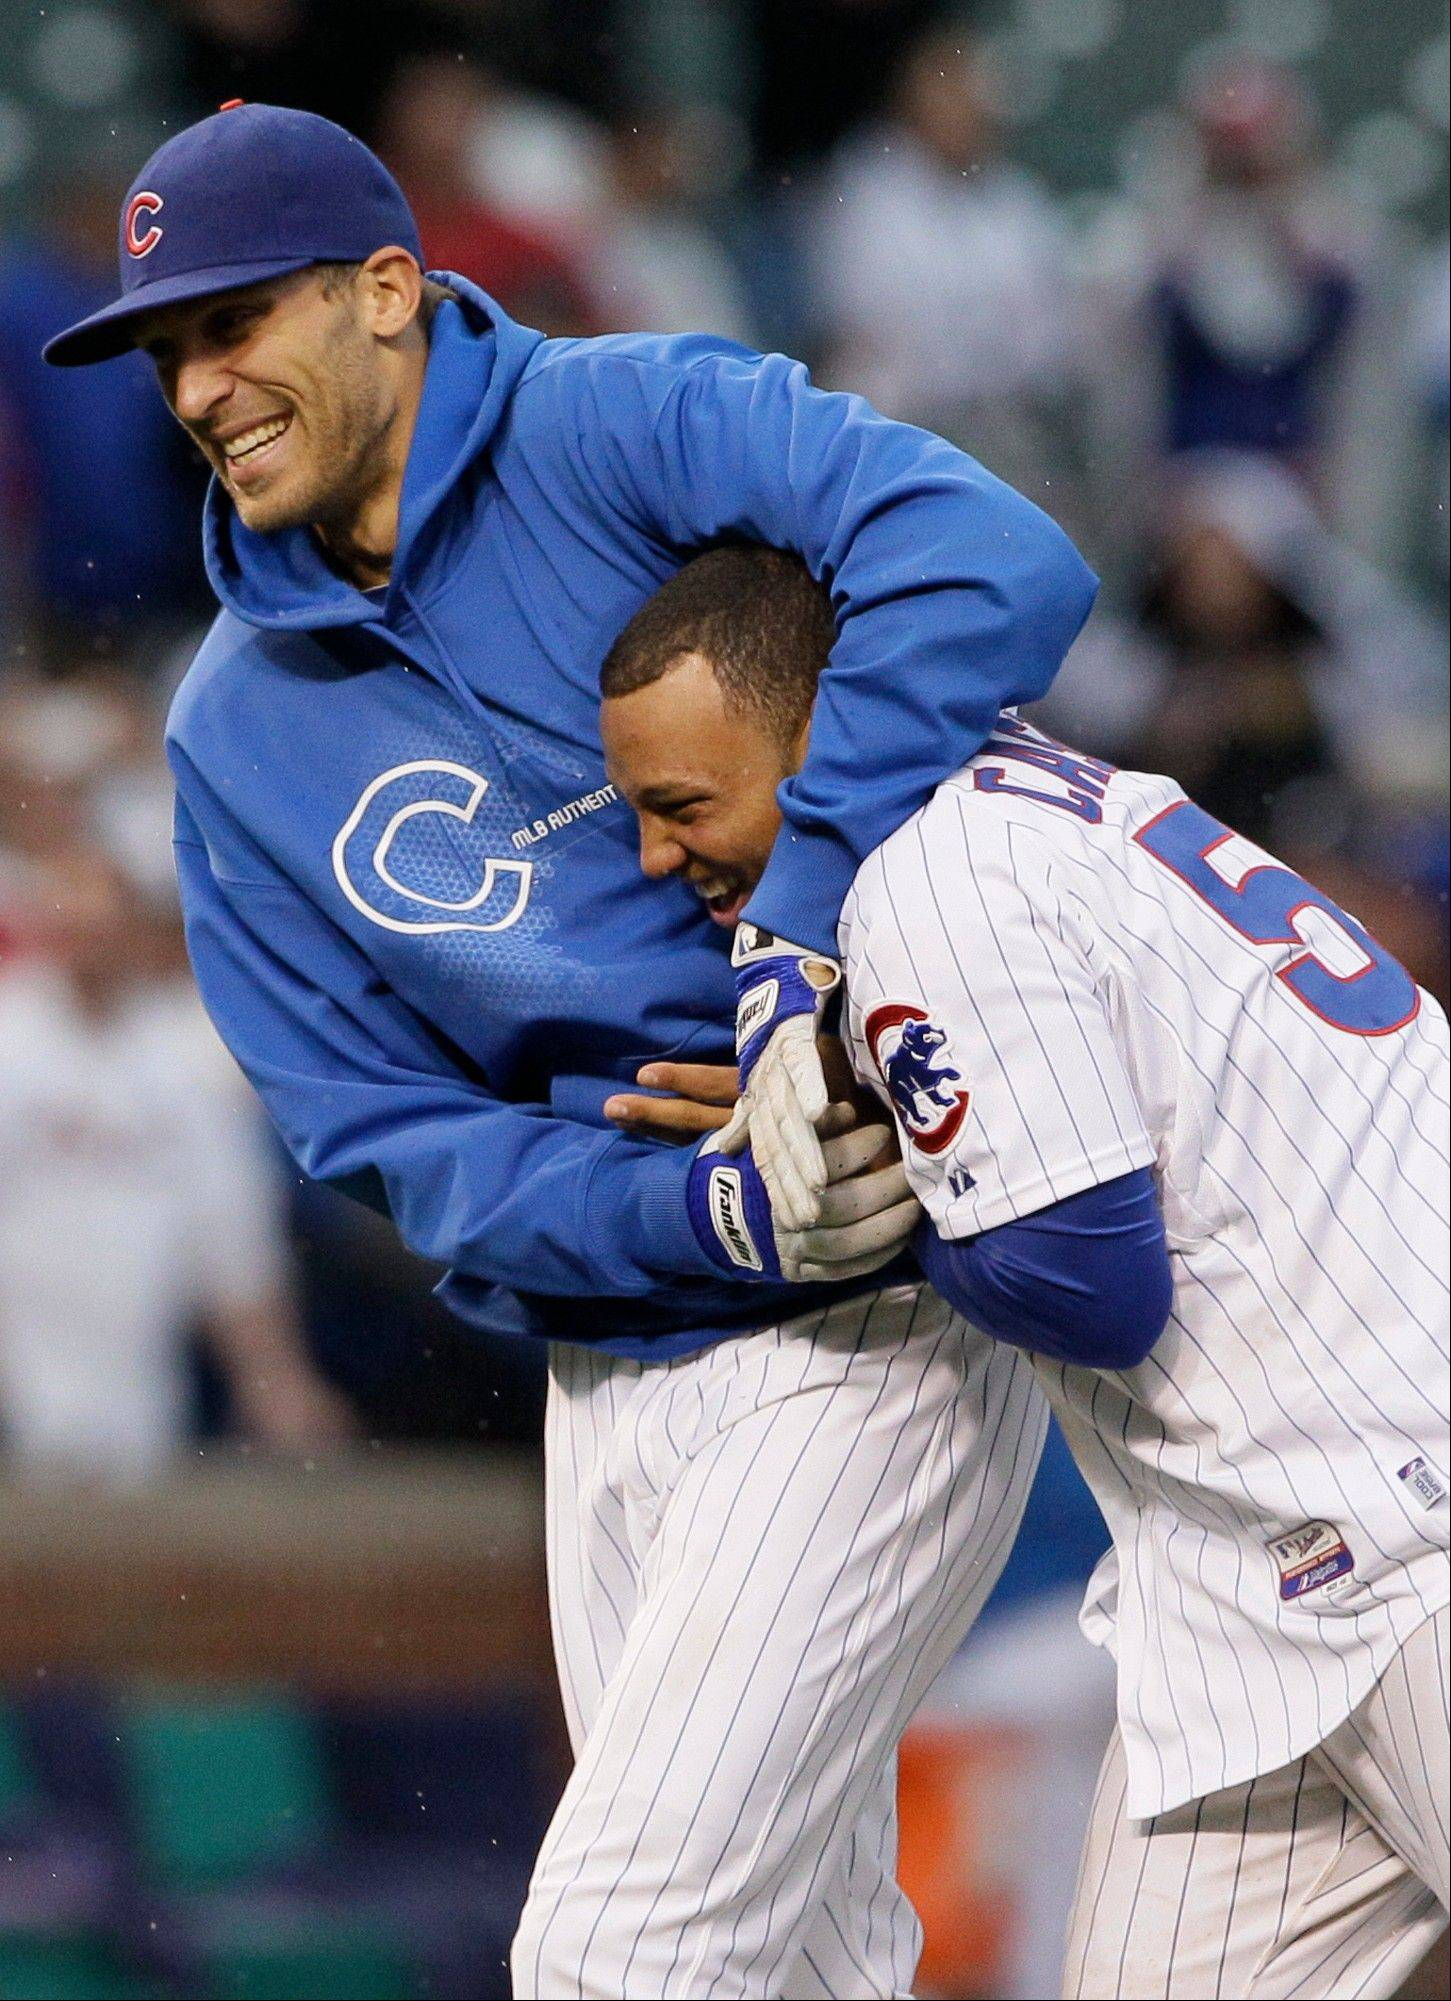 Chicago Cubs' Welington Castillo, right, celebrates with Matt Garza after the Cubs defeated St. Louis Cardinals 5-4 after the 11th inning of a baseball game in Chicago, Friday, Sept. 21, 2012. (AP Photo/Nam Y. Huh)